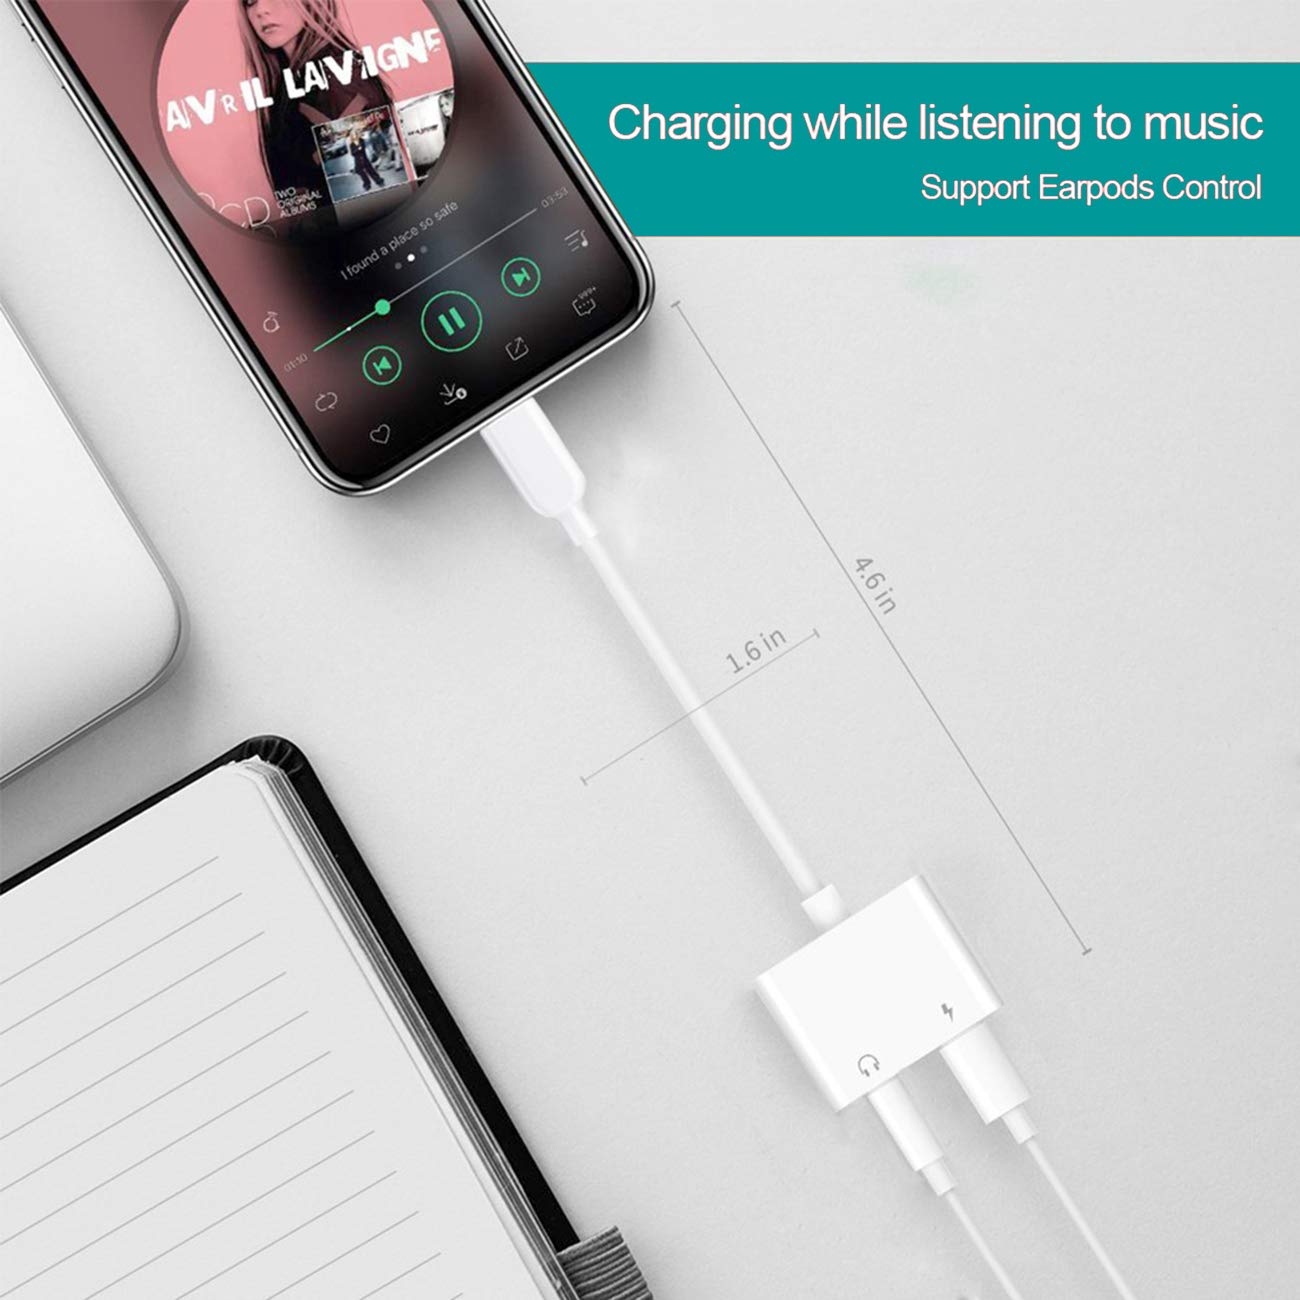 Charger Cable Splitter Adaptor Stereo Aux Converter Charging for iPhone Dongle Headphone Jack Adapter Compatible with iPhone7//7Plus//8//8Plus//X//XS//XR Supports ios11//12 Headphone 2 in 1 to Audio